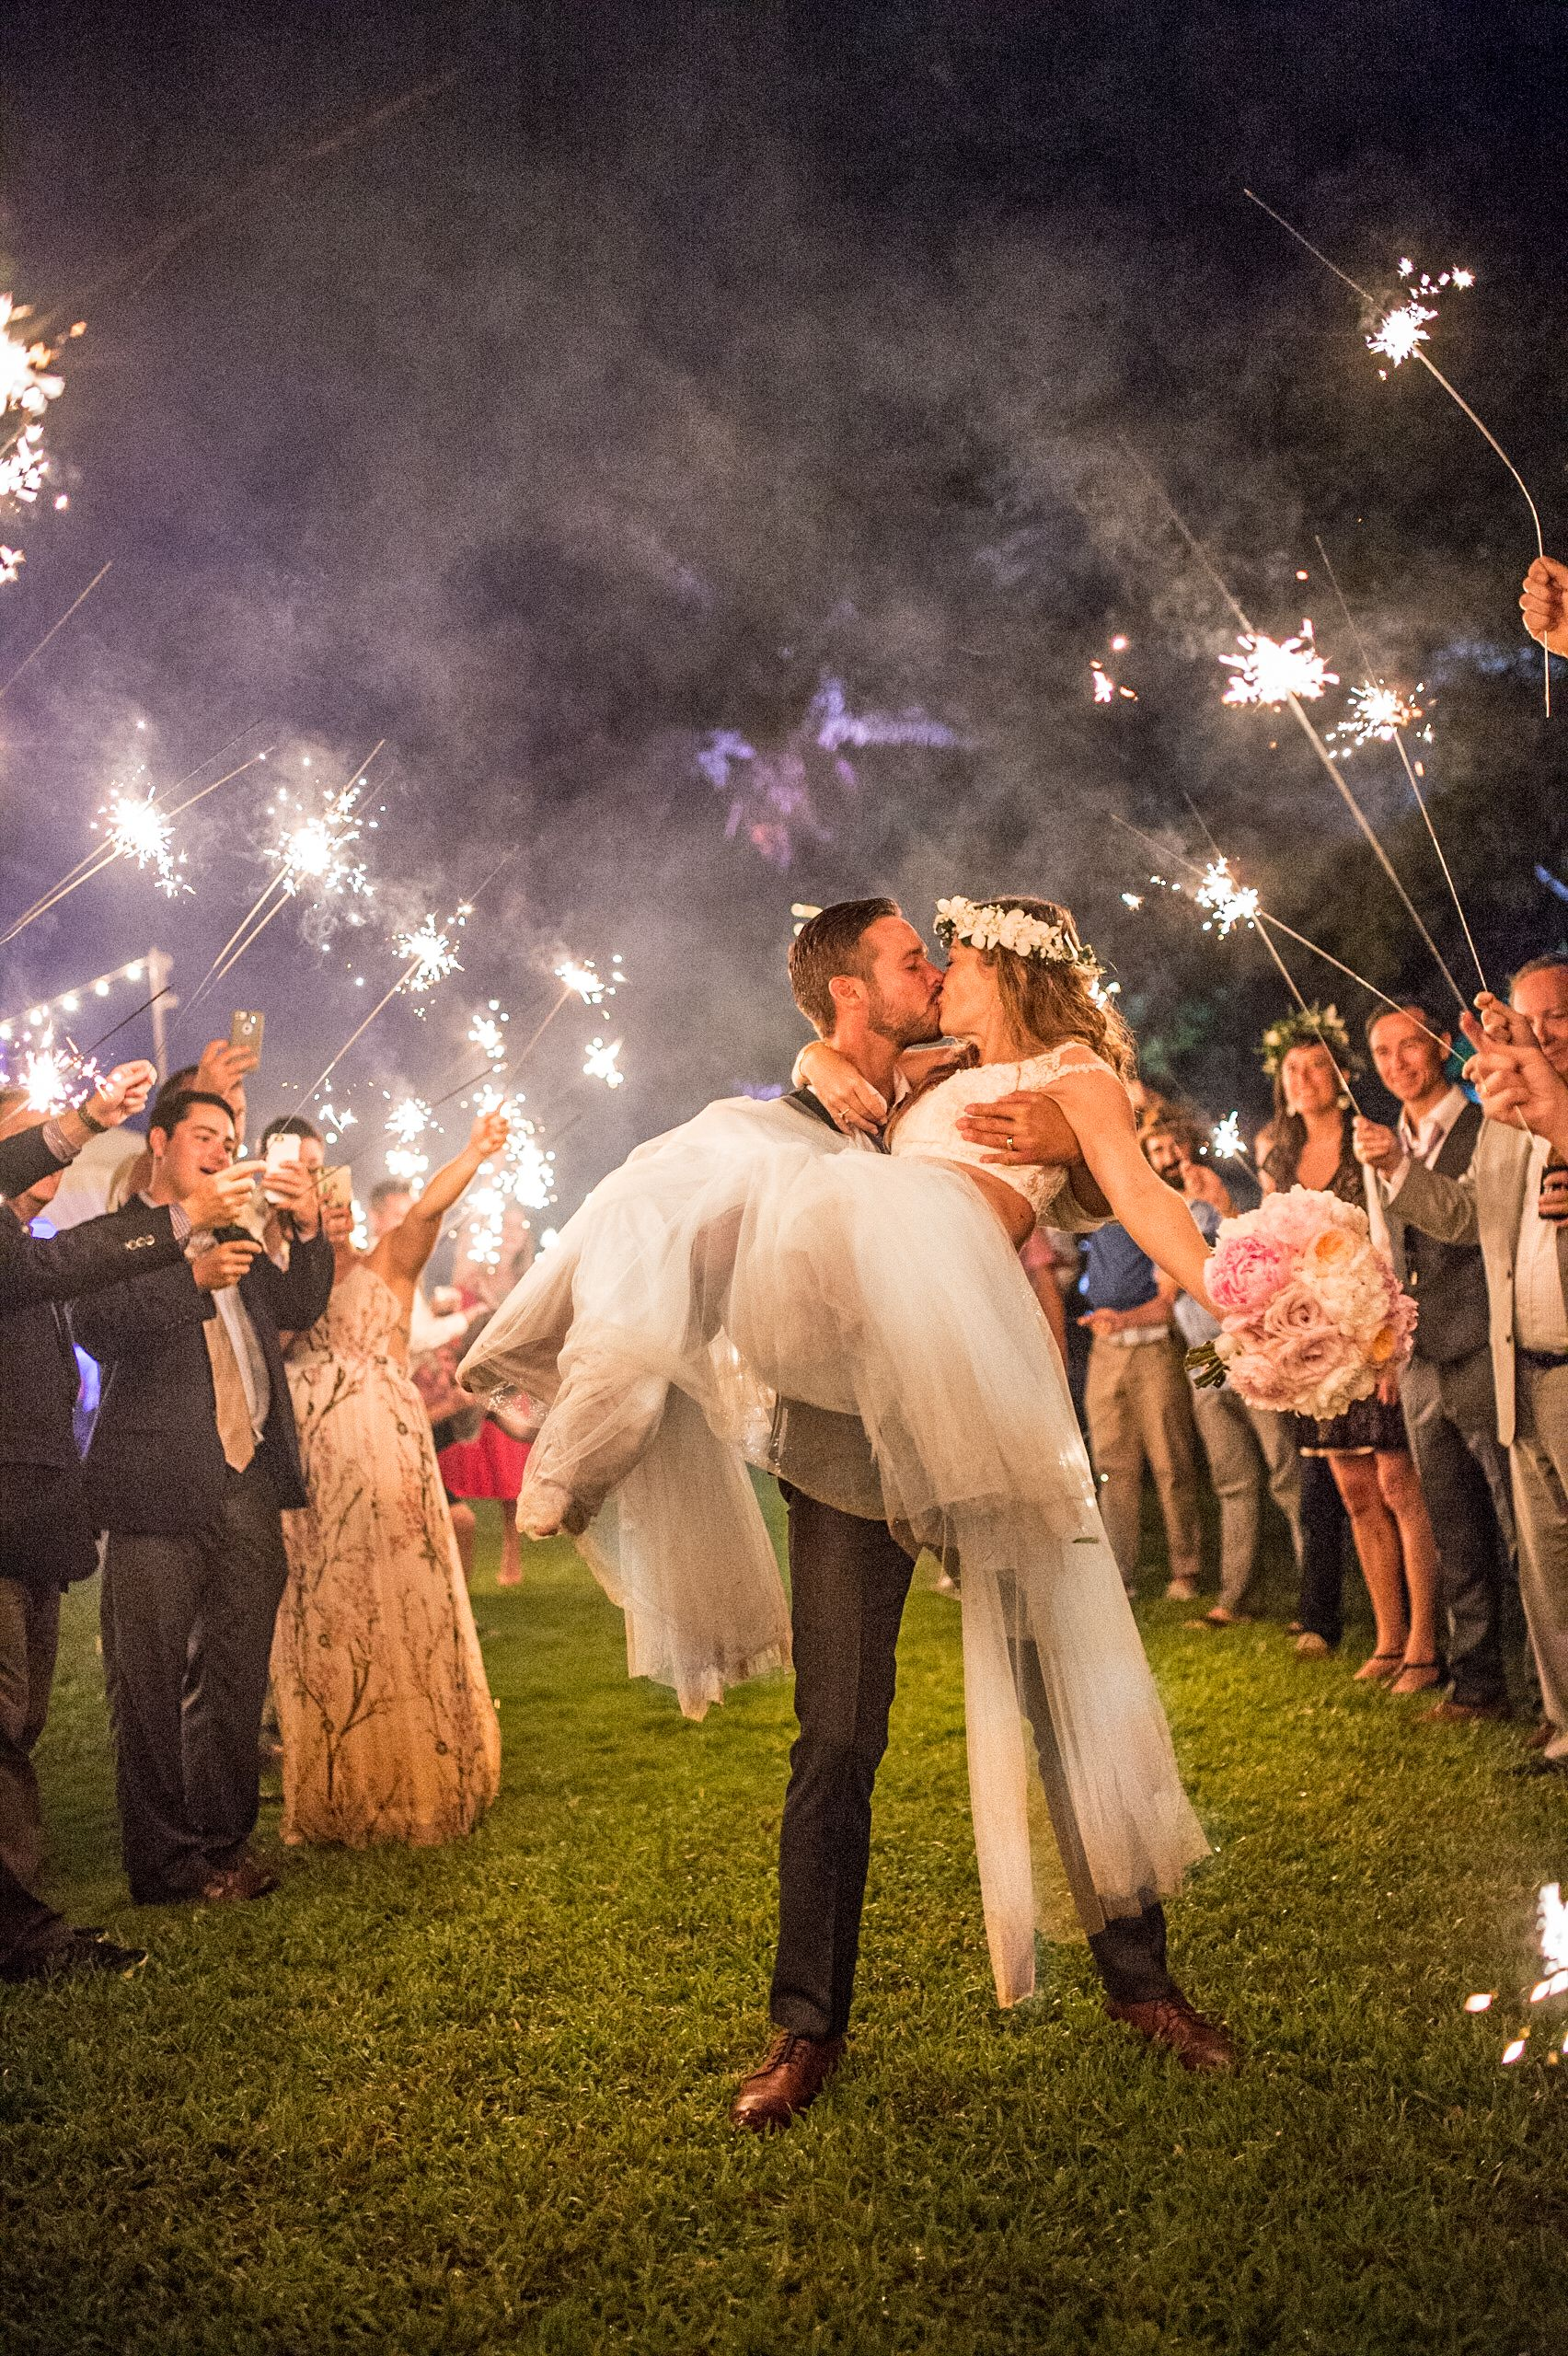 Hawaii Sparkler Wedding Photo